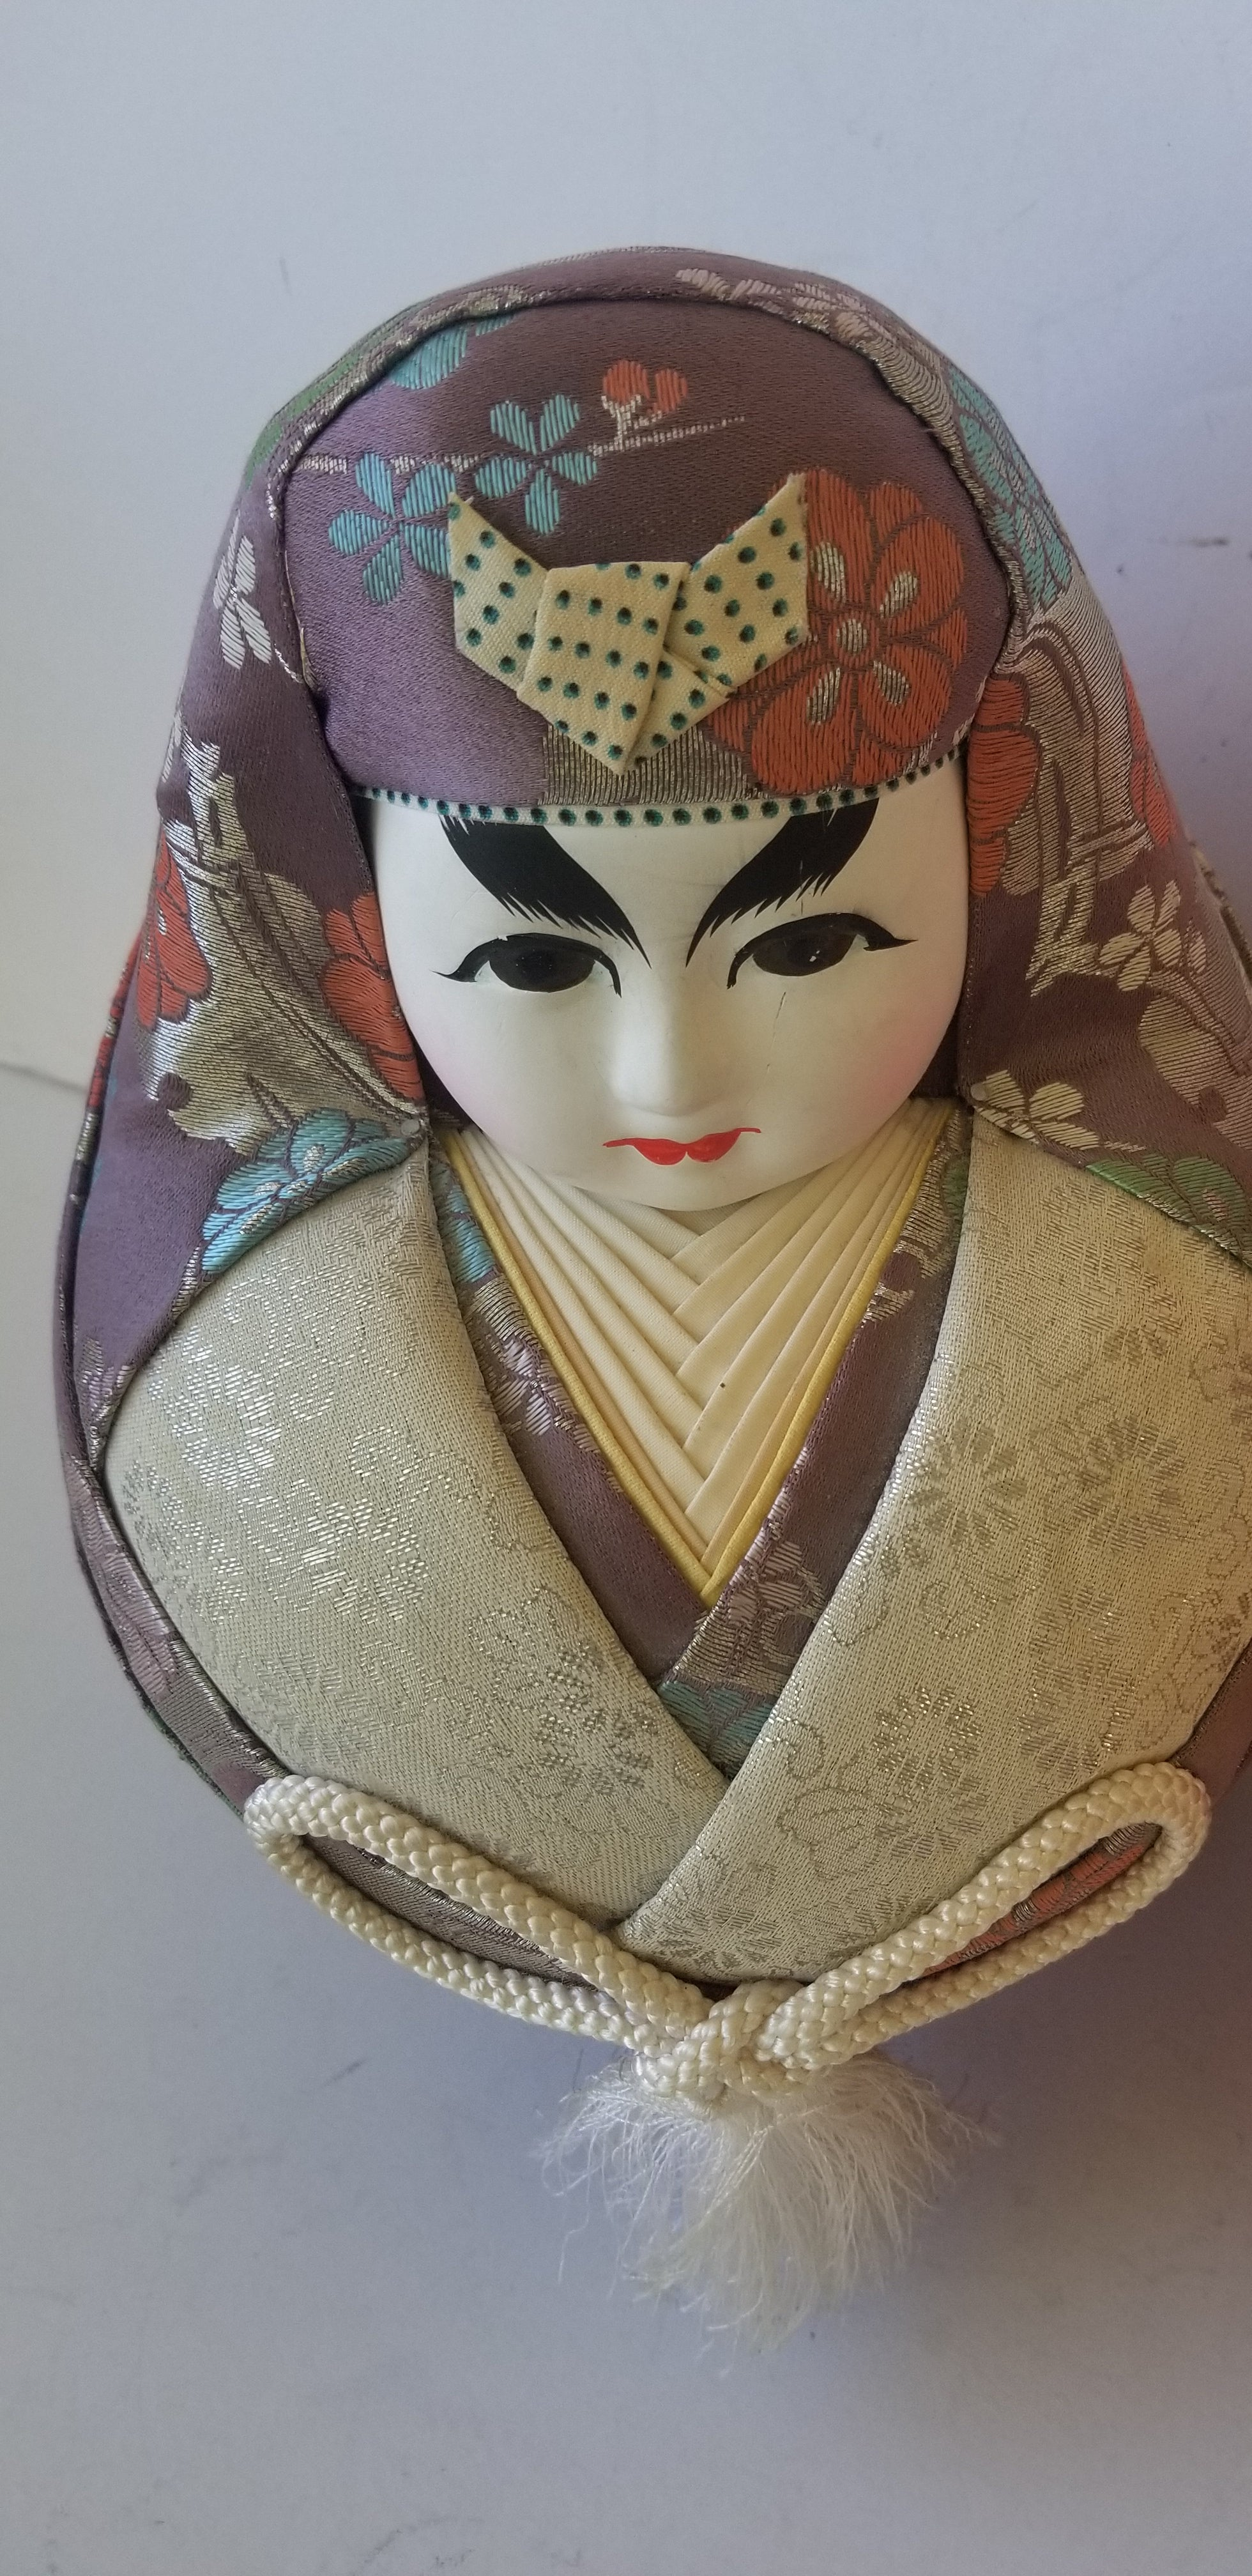 Emperor and Empress silk fabric handmade multicolor ginger jar style dolls